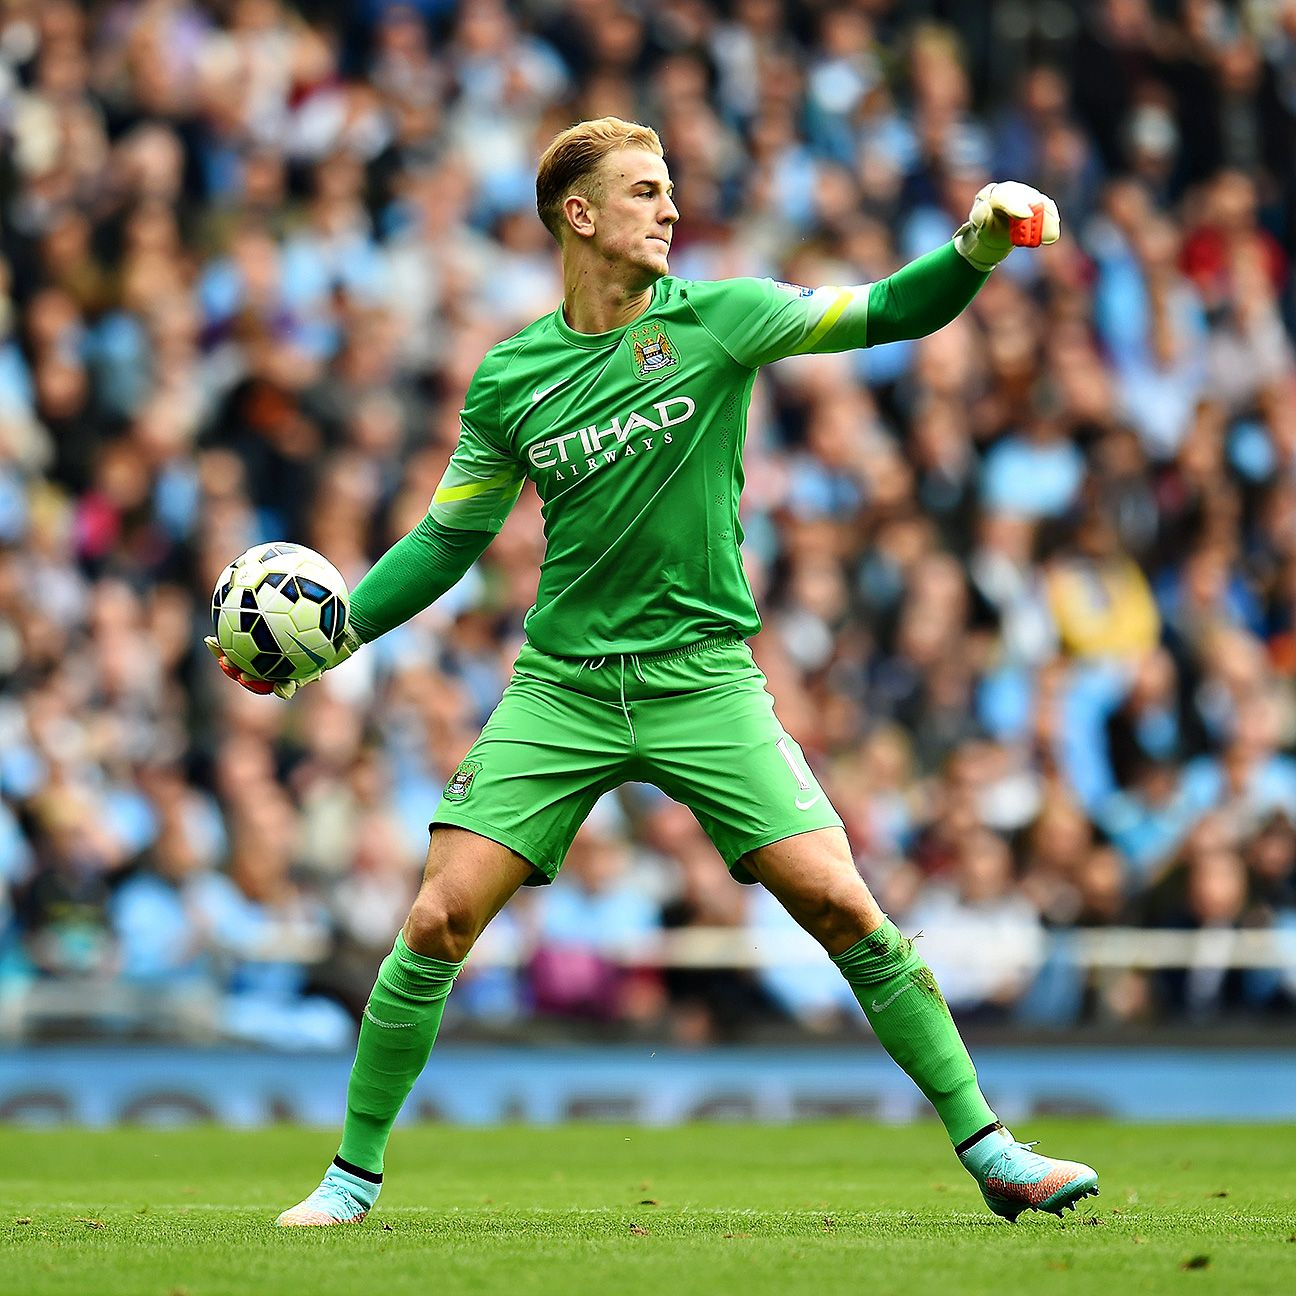 Joe Hart has registered seven Premier League clean sheets thus far for Manchester City.